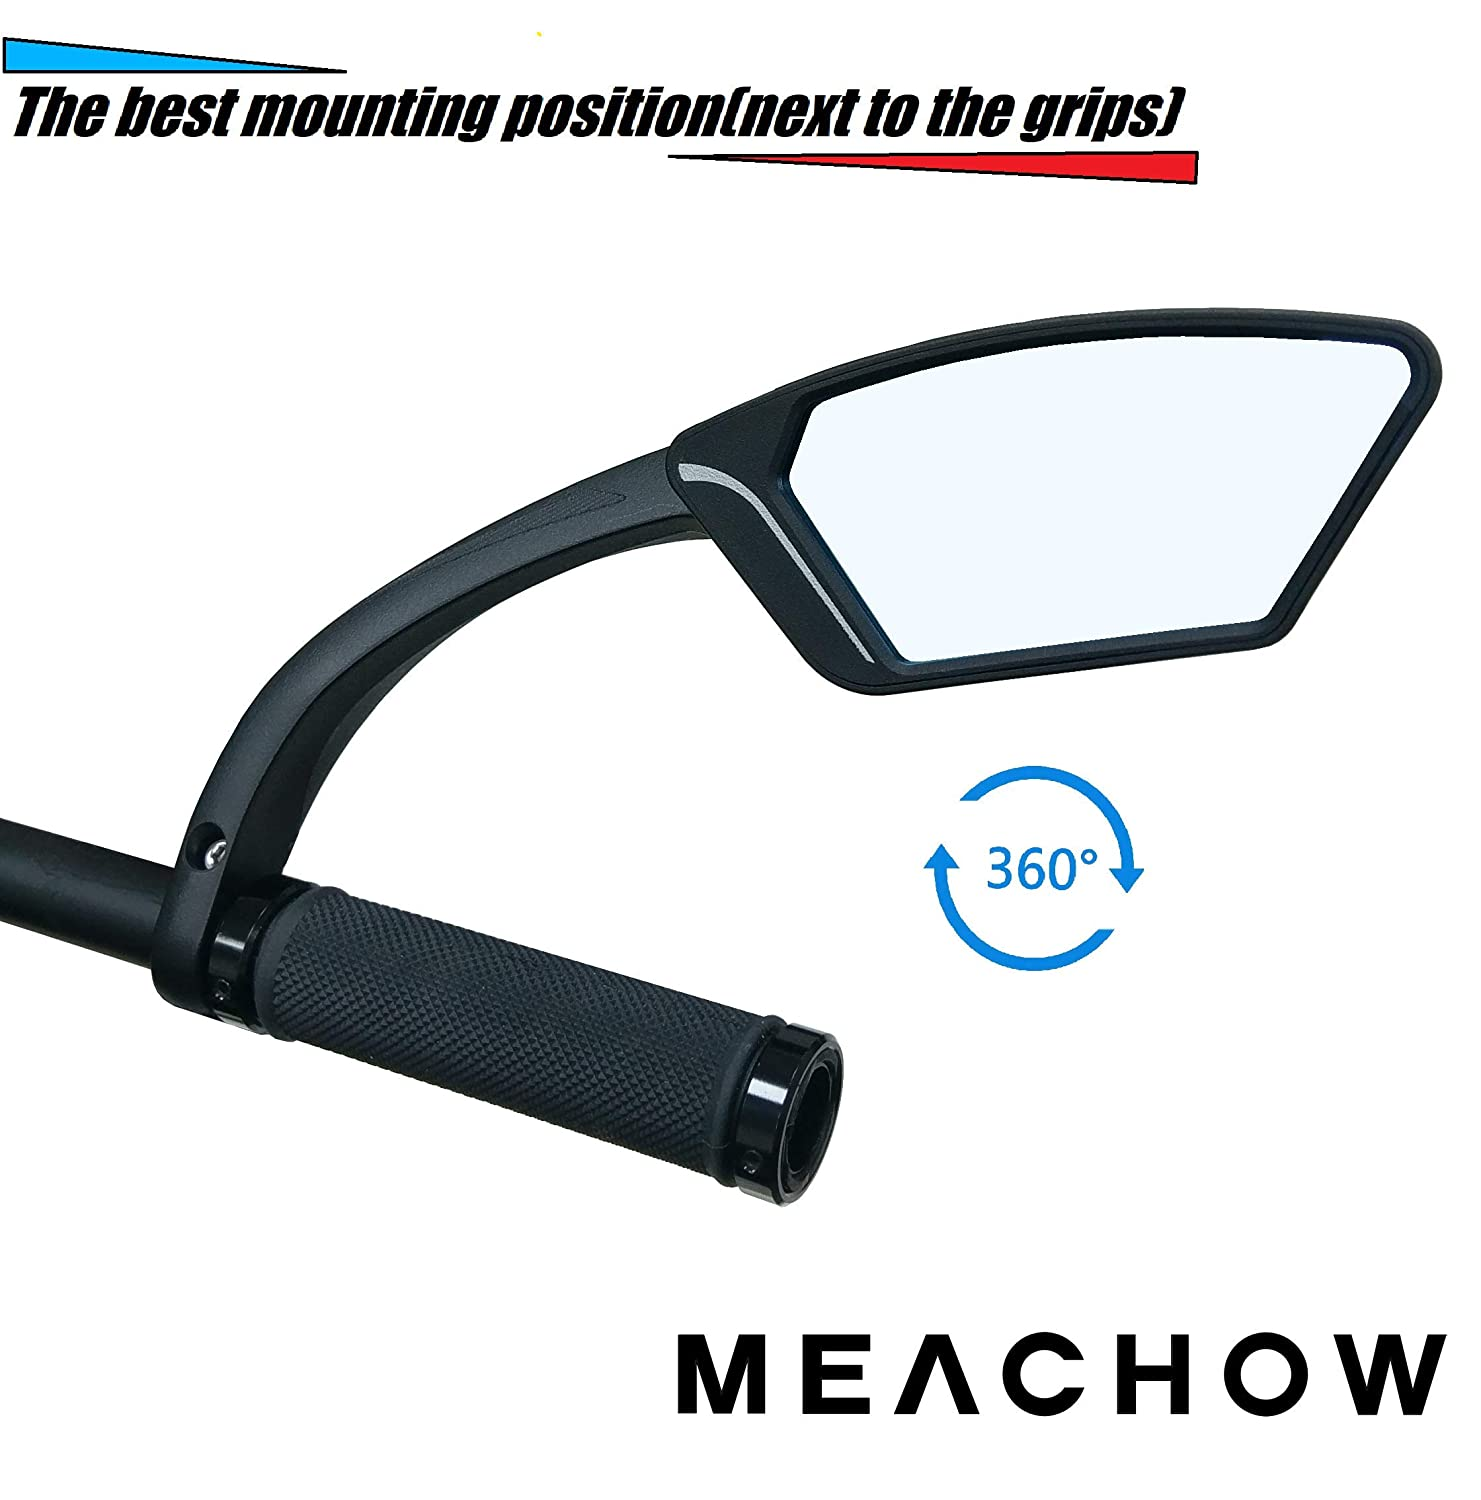 MEACHOW New Scratch Resistant Glass Lens,Handlebar Bike Mirror Bicycle Mirror,ME-002 Rotatable Safe Rearview Mirror